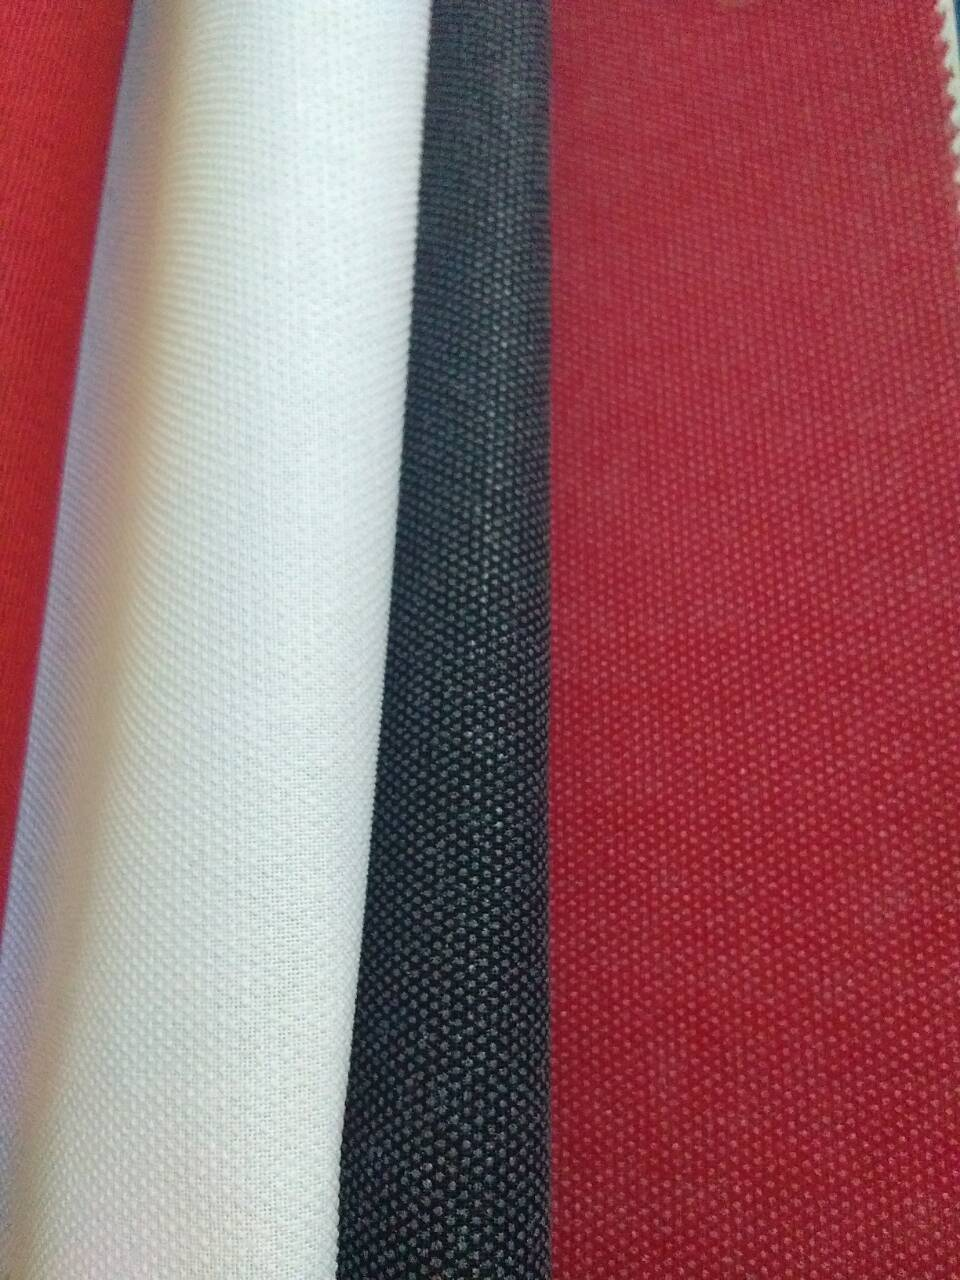 fashion fusible interlining/polyester interlining for shoes